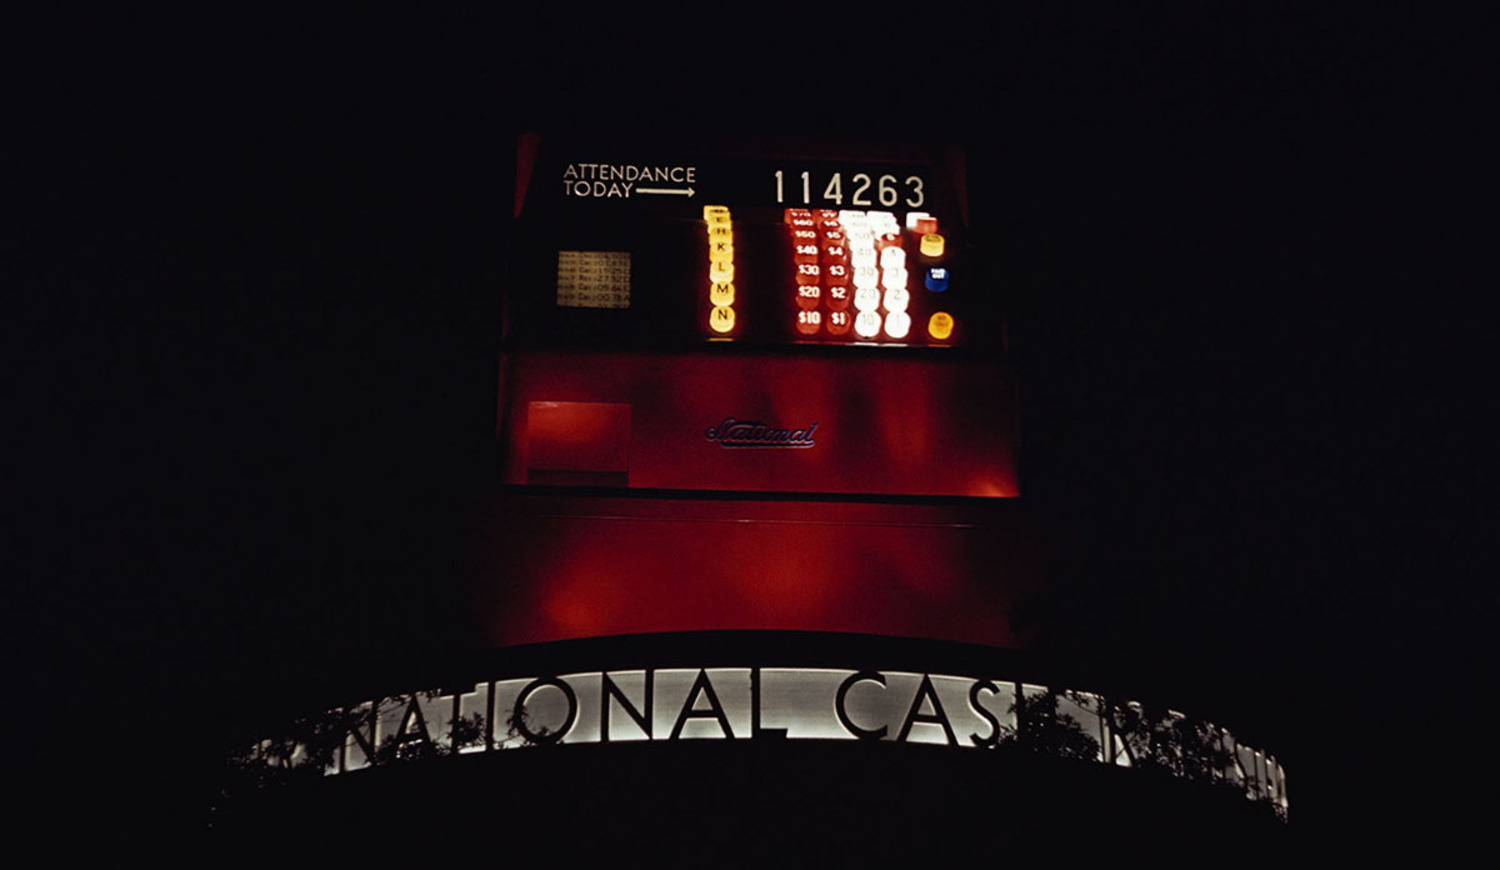 The National Cash Register building shows the number of people in attendance at the 1939 New York World's Fair.